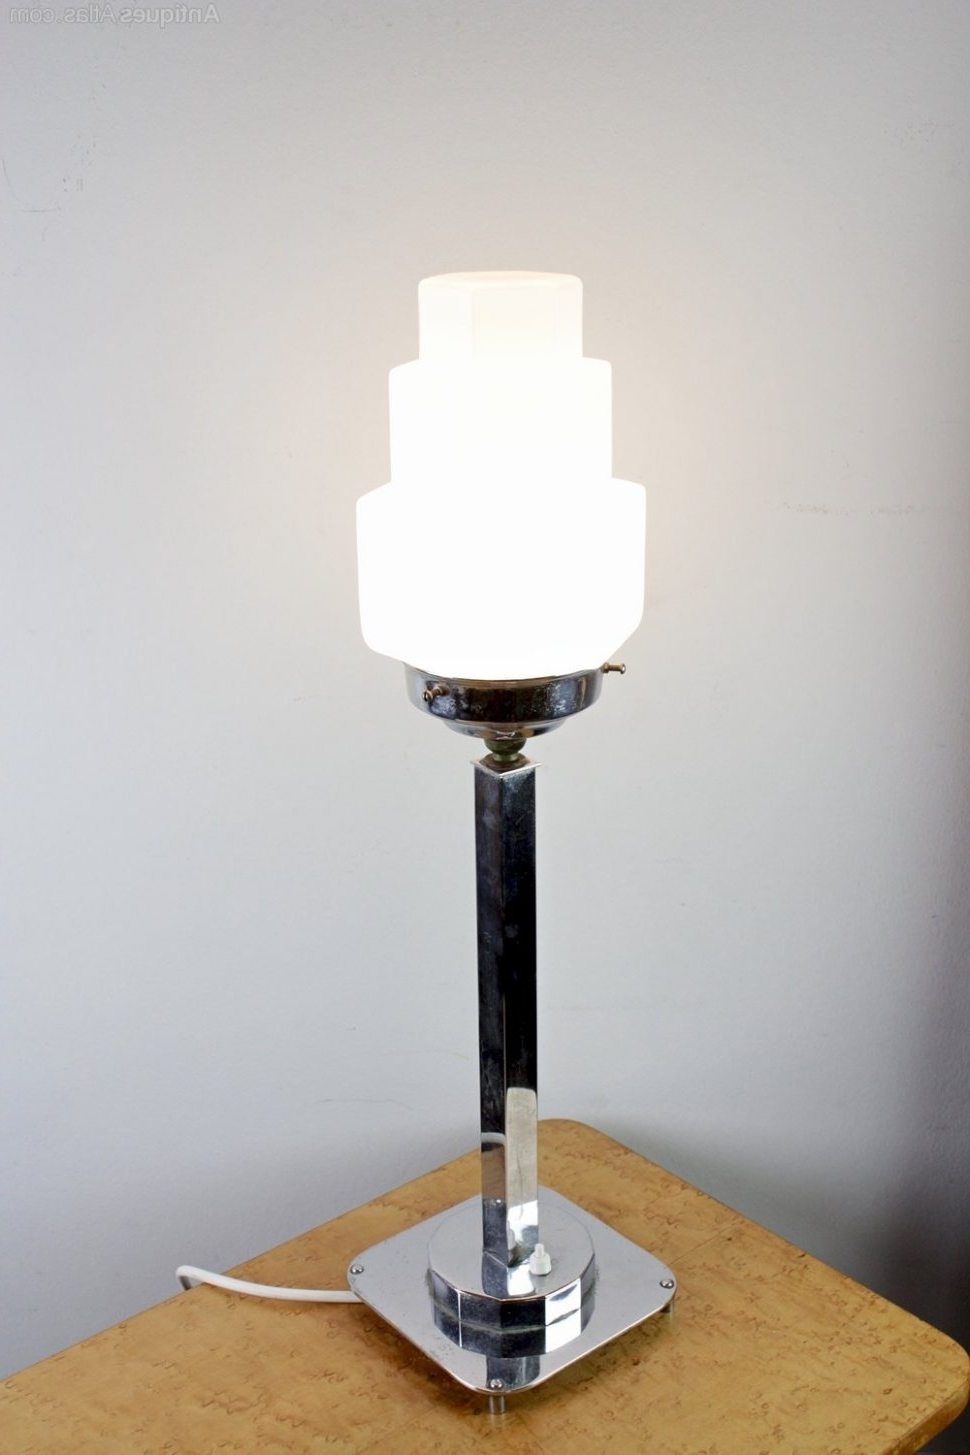 Livingroom : Antique Art Deco Table Lamps — Design The Categories Of Within 2019 Table Lamps For Living Room At Ebay (View 8 of 20)